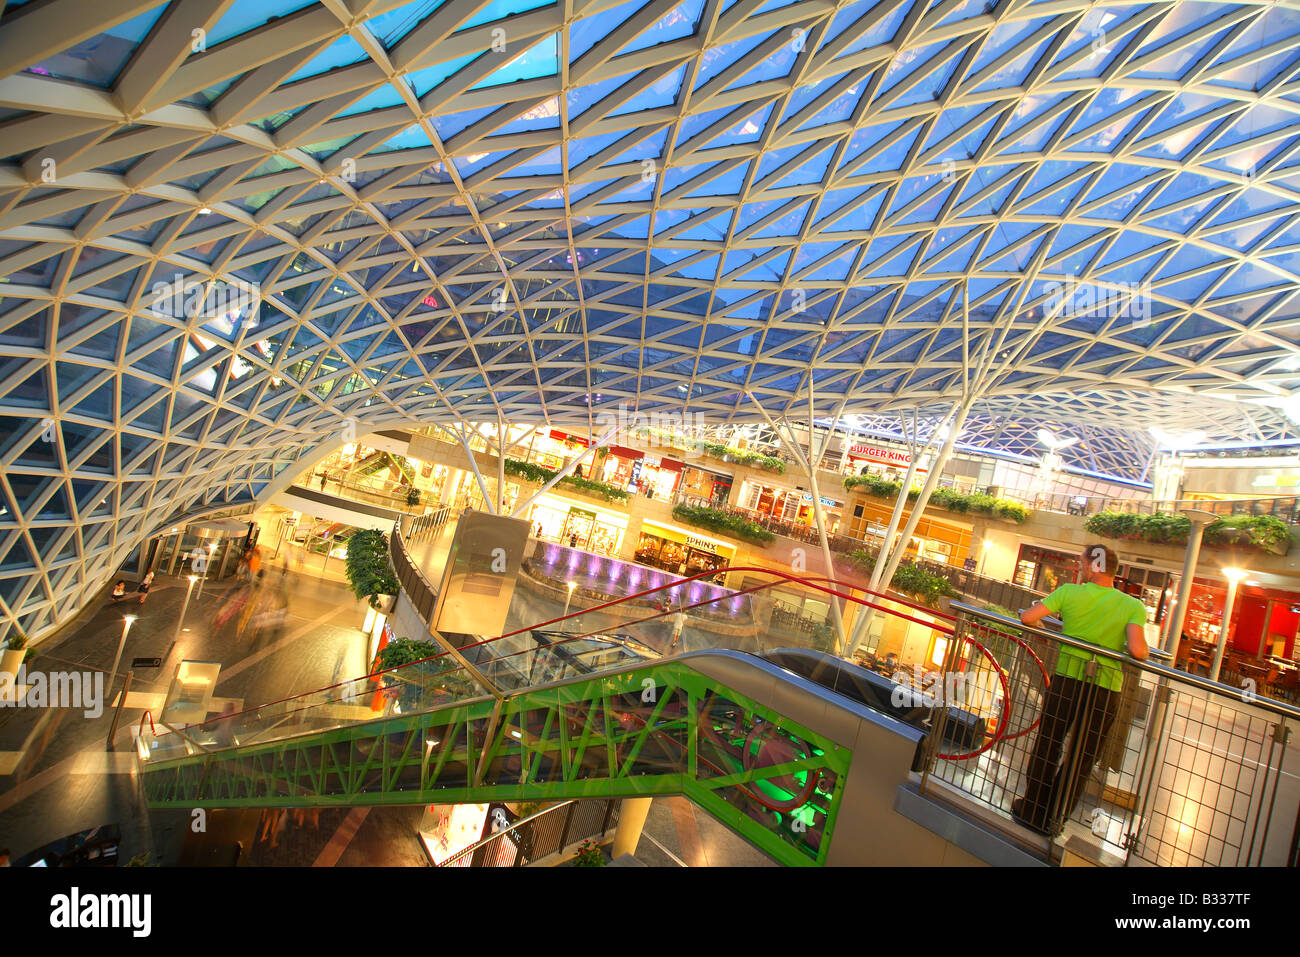 Warsaw Warszawa Poland Shopping Mall Golden Terraces Zlote Tarasy Stock Photo Royalty Free